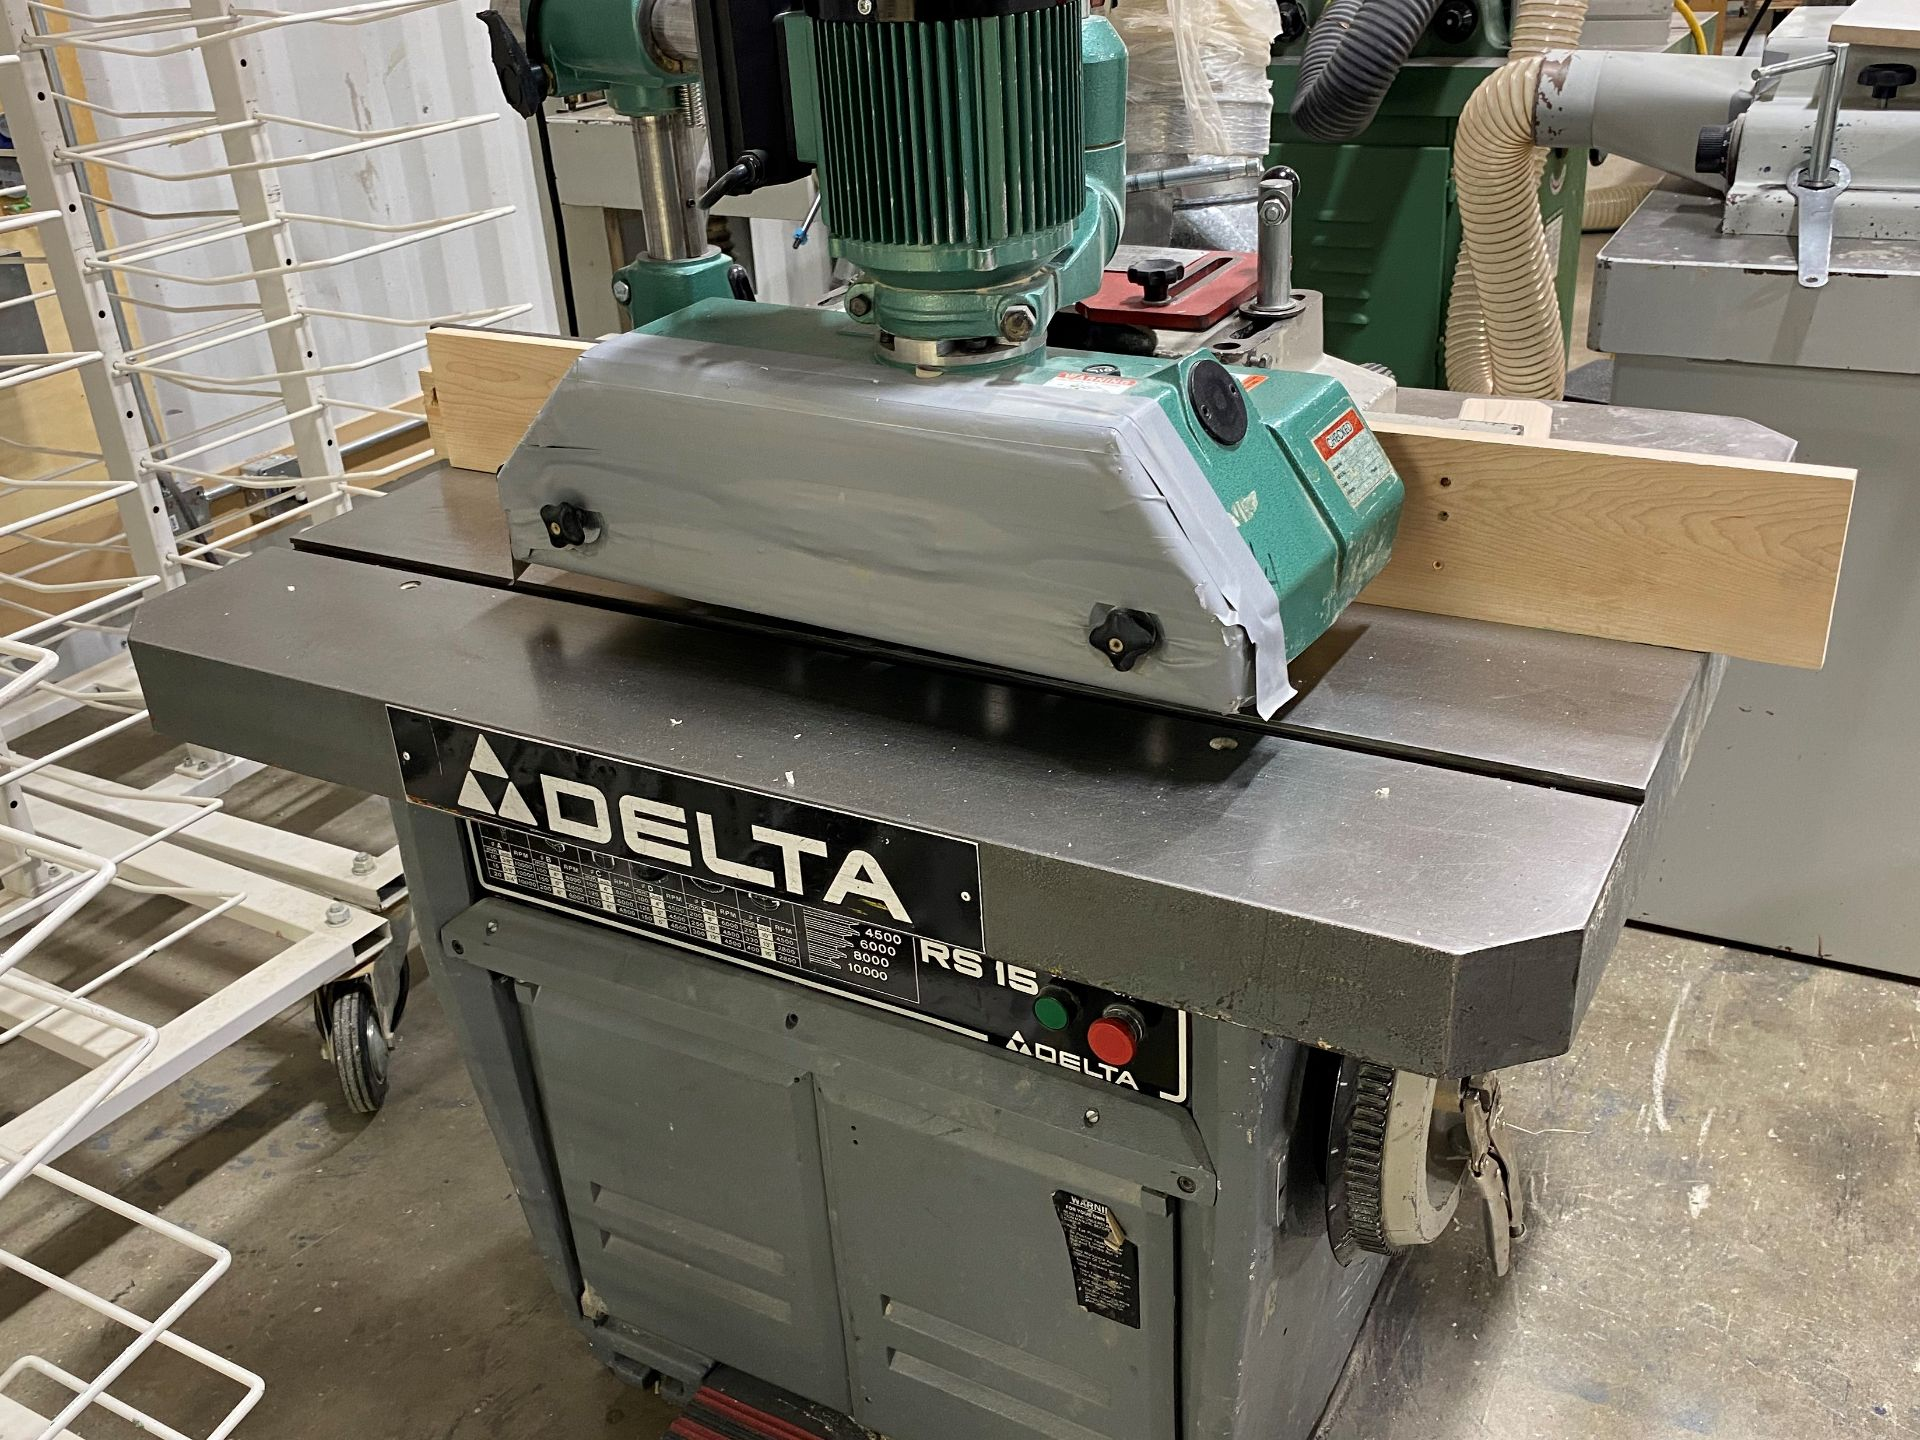 DELTA RS15 VERTICAL SPINDLE SHAPER, 230/460V, 3PH W/ GENERAL 01095 4 ROLL POWERFEED